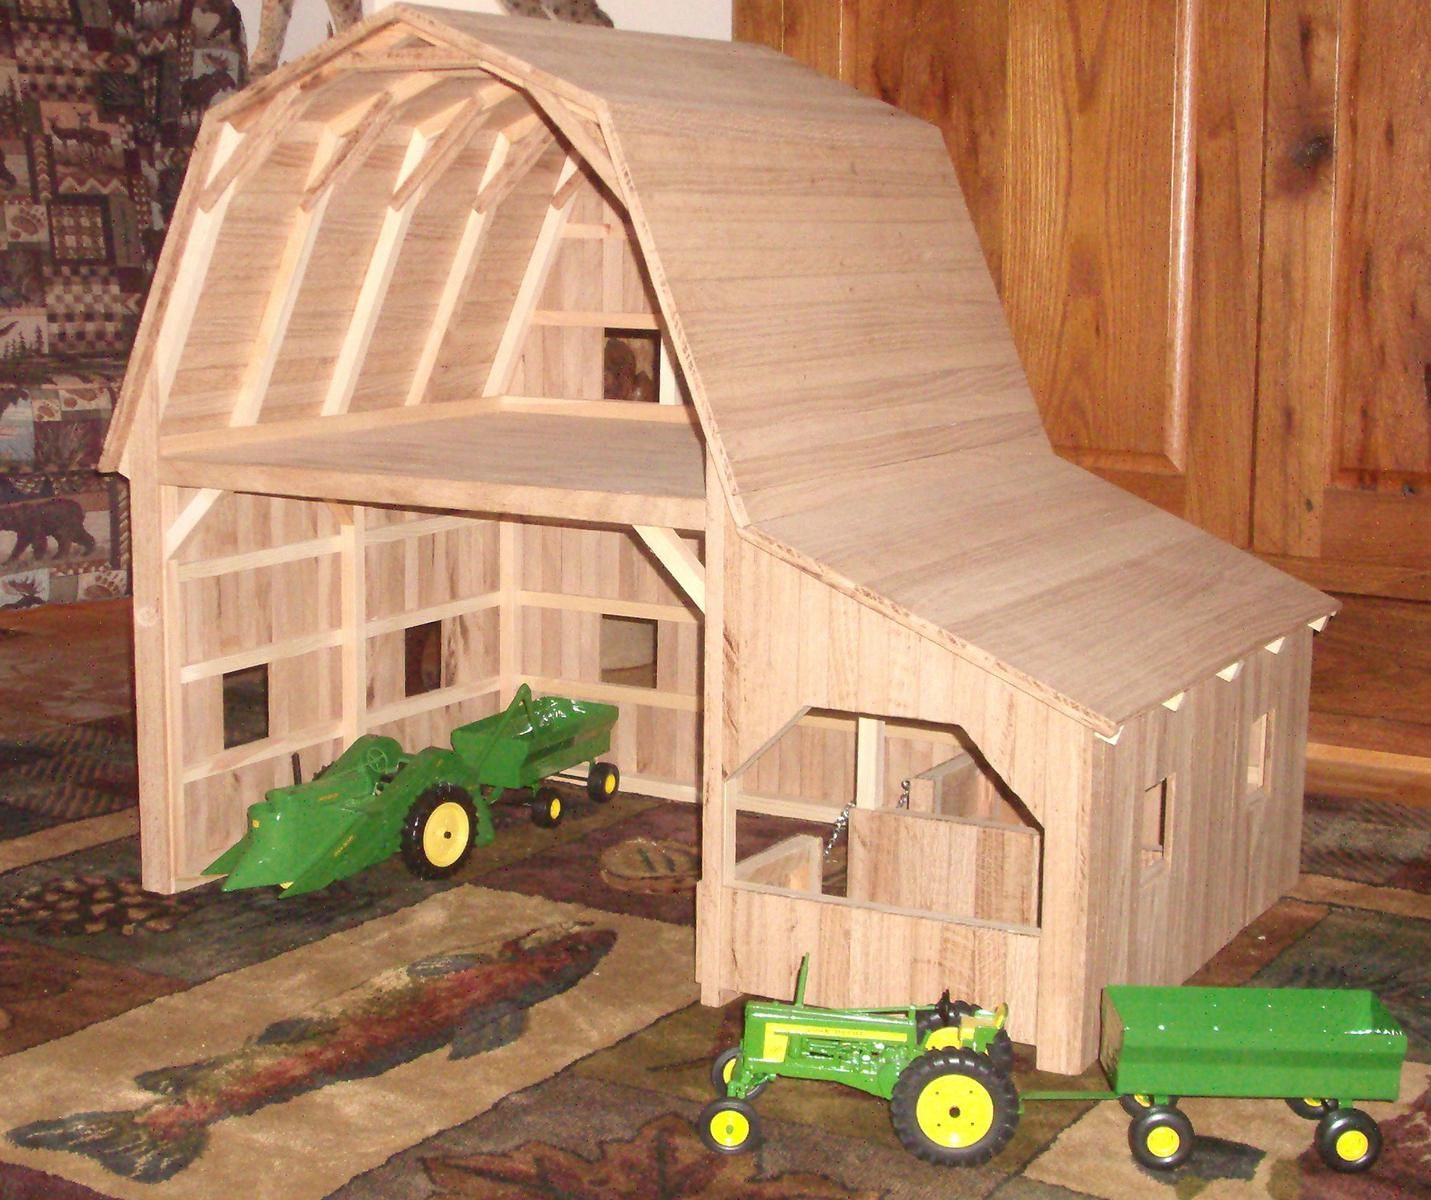 20 Toy Horse Barn Kits Pictures And Ideas On Stem Education Caucus